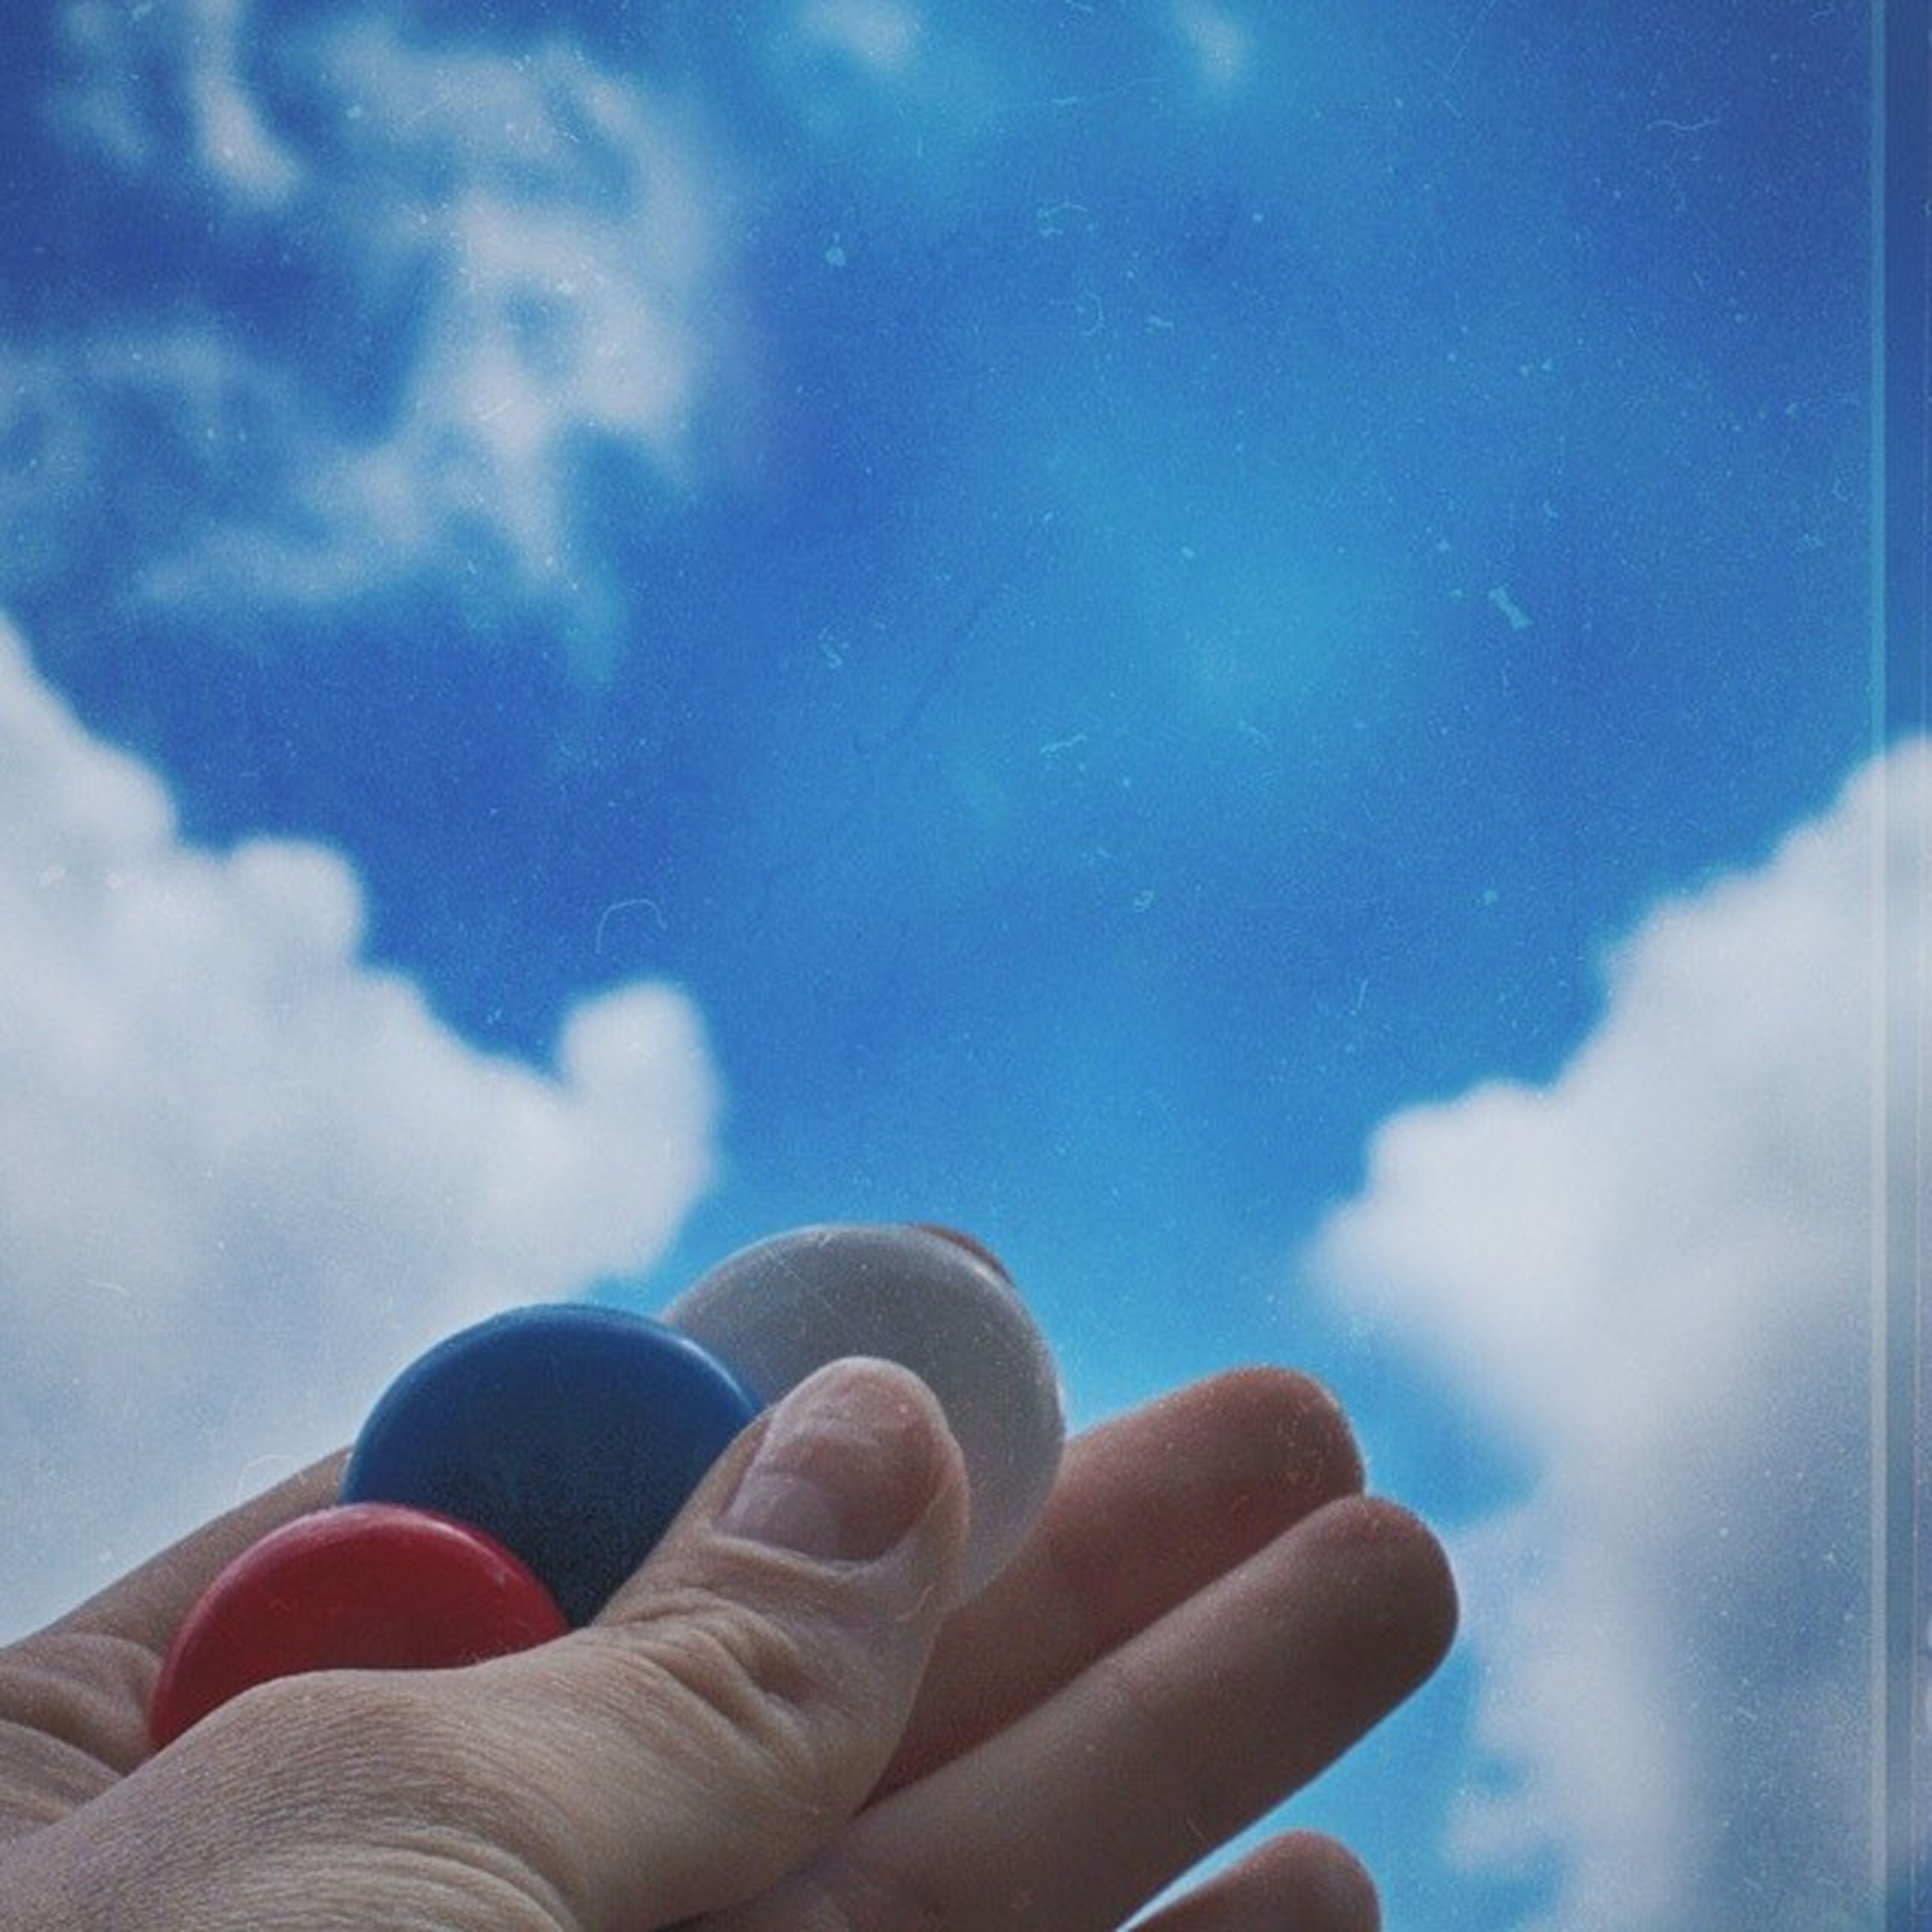 person, part of, personal perspective, sky, human finger, cloud - sky, blue, cropped, holding, unrecognizable person, low angle view, lifestyles, leisure activity, close-up, cloud, cloudy, day